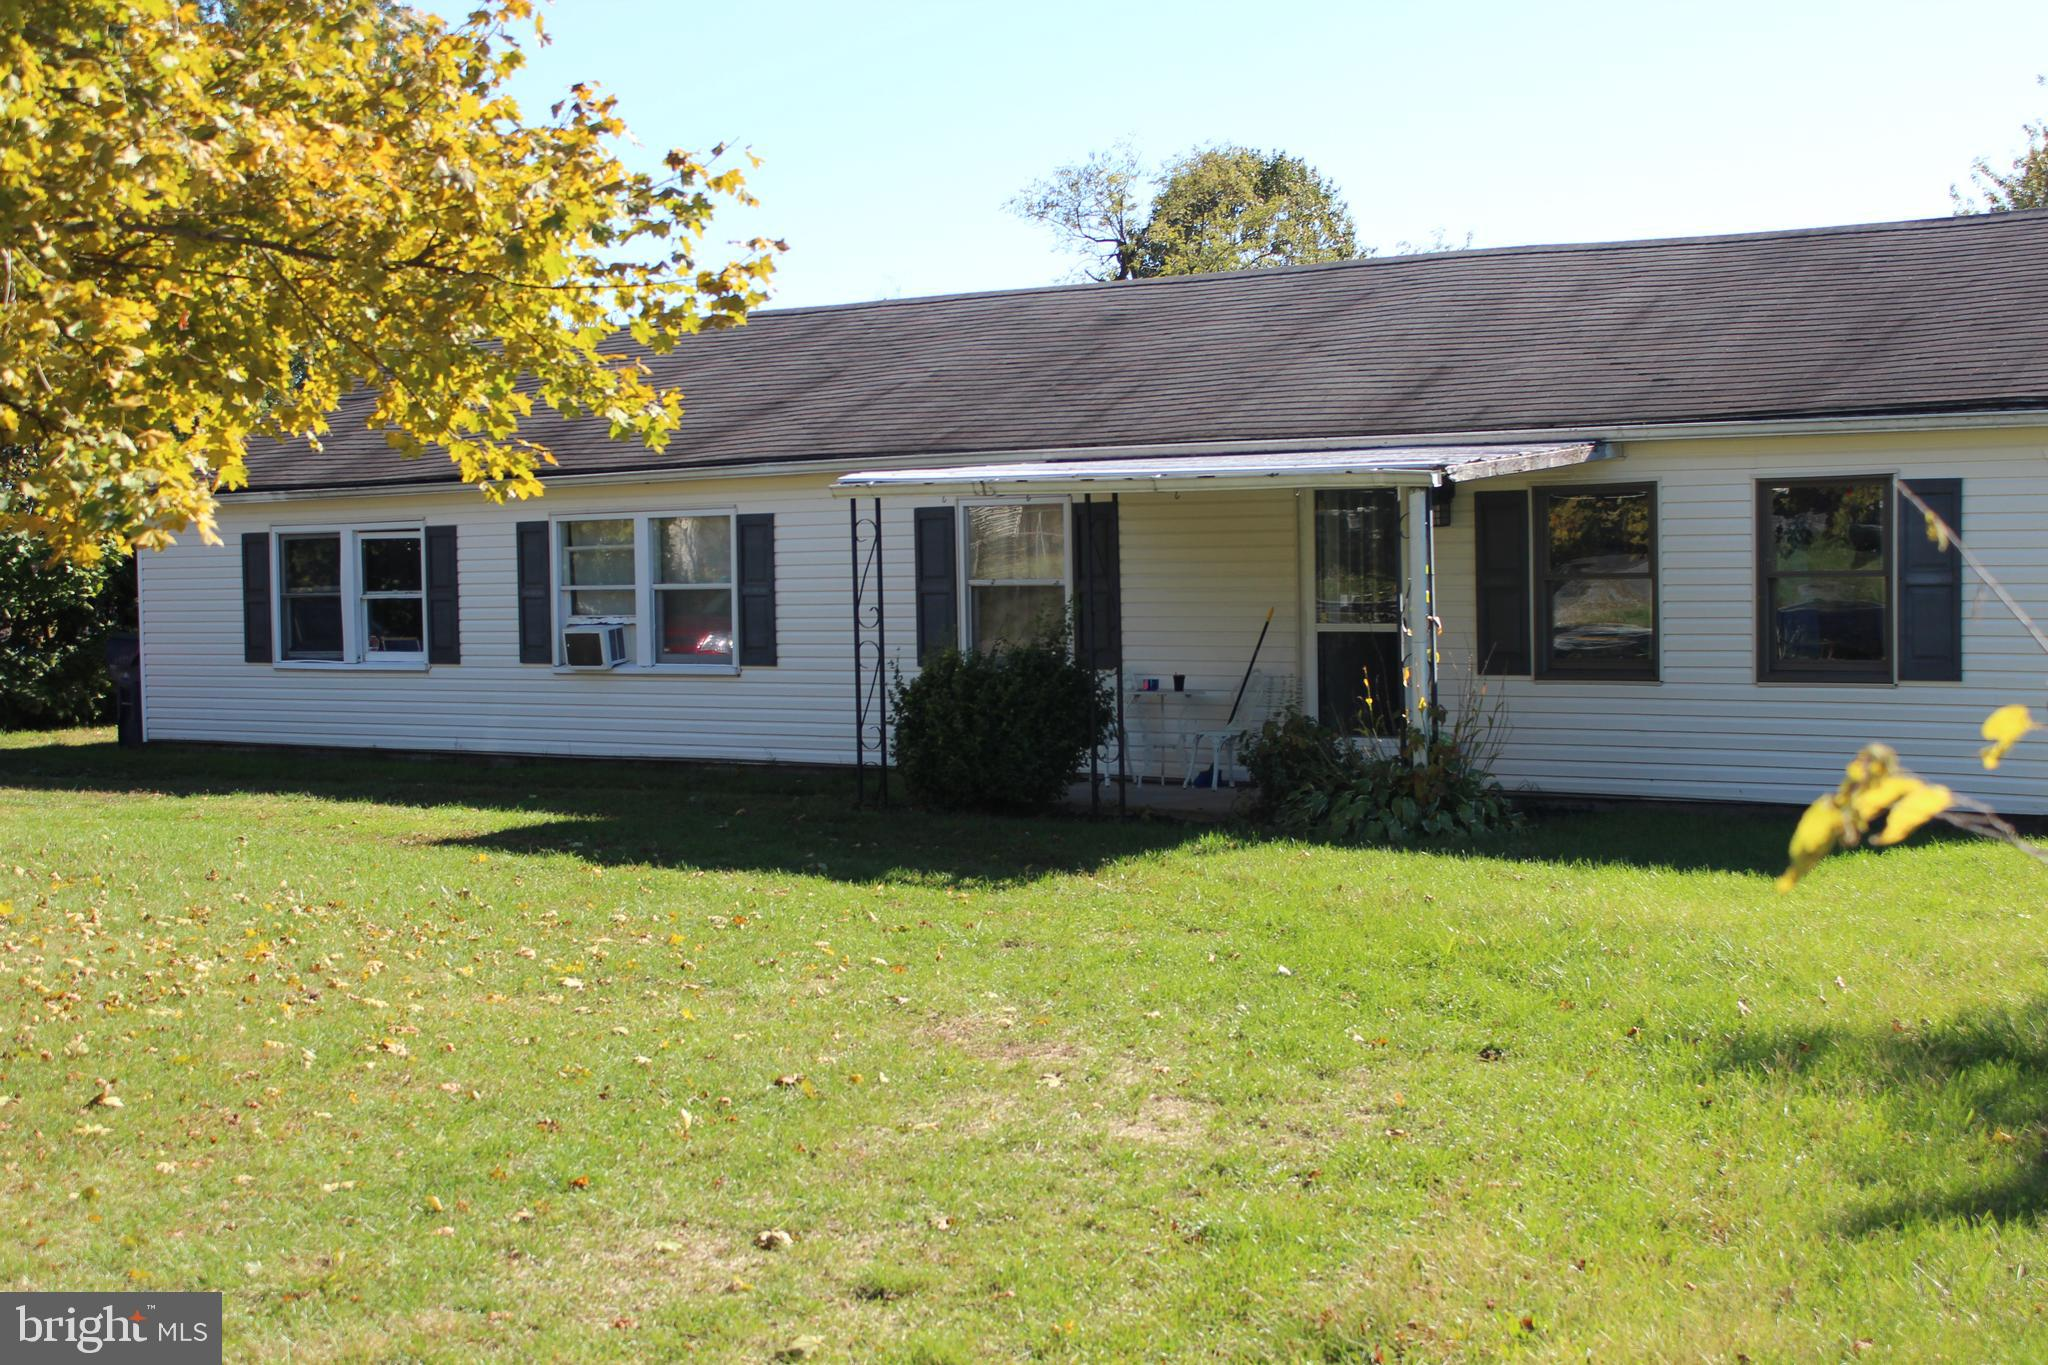 6141 JACK ROAD, SAINT THOMAS, PA 17252